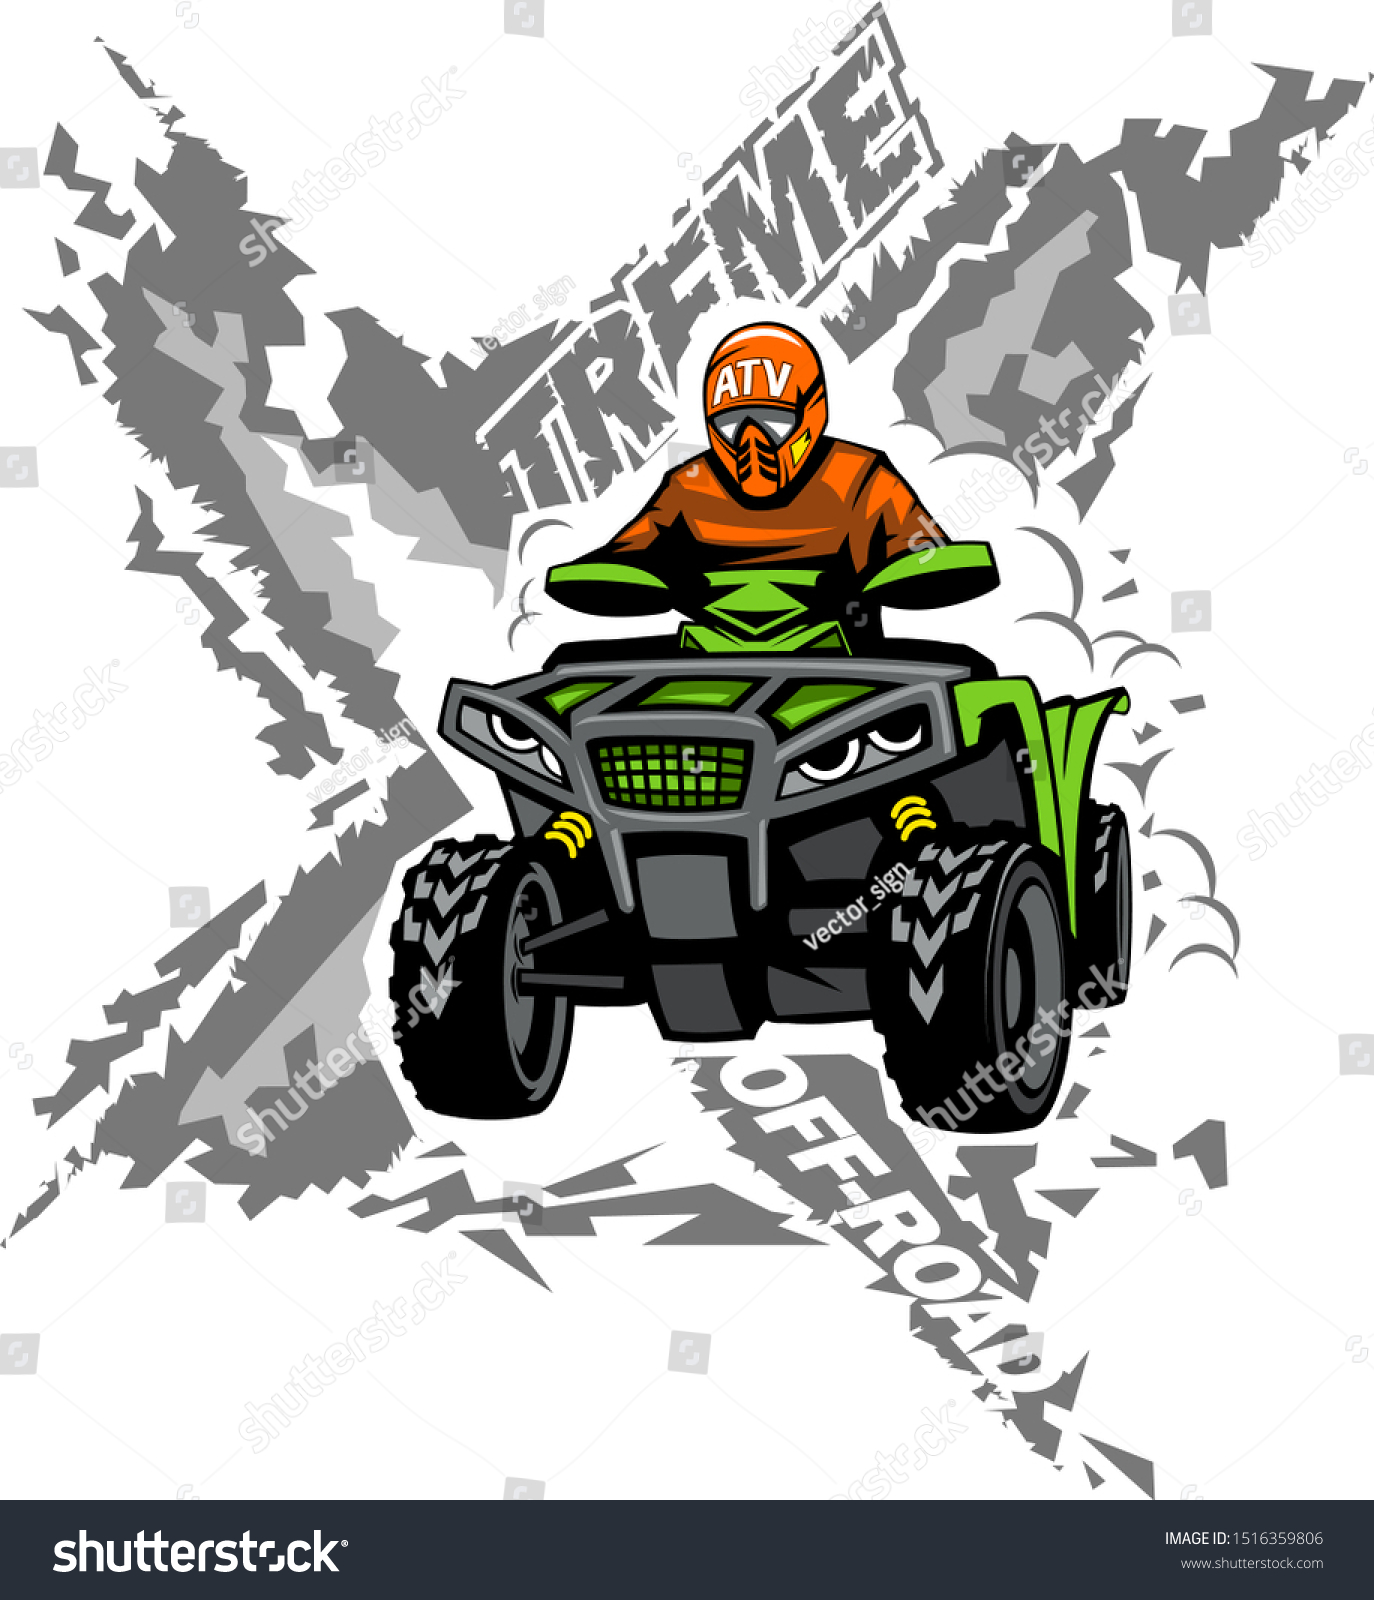 Xtreme Atv Offroad Quad Bike Isolated Stock Vector Royalty Free 1516359806